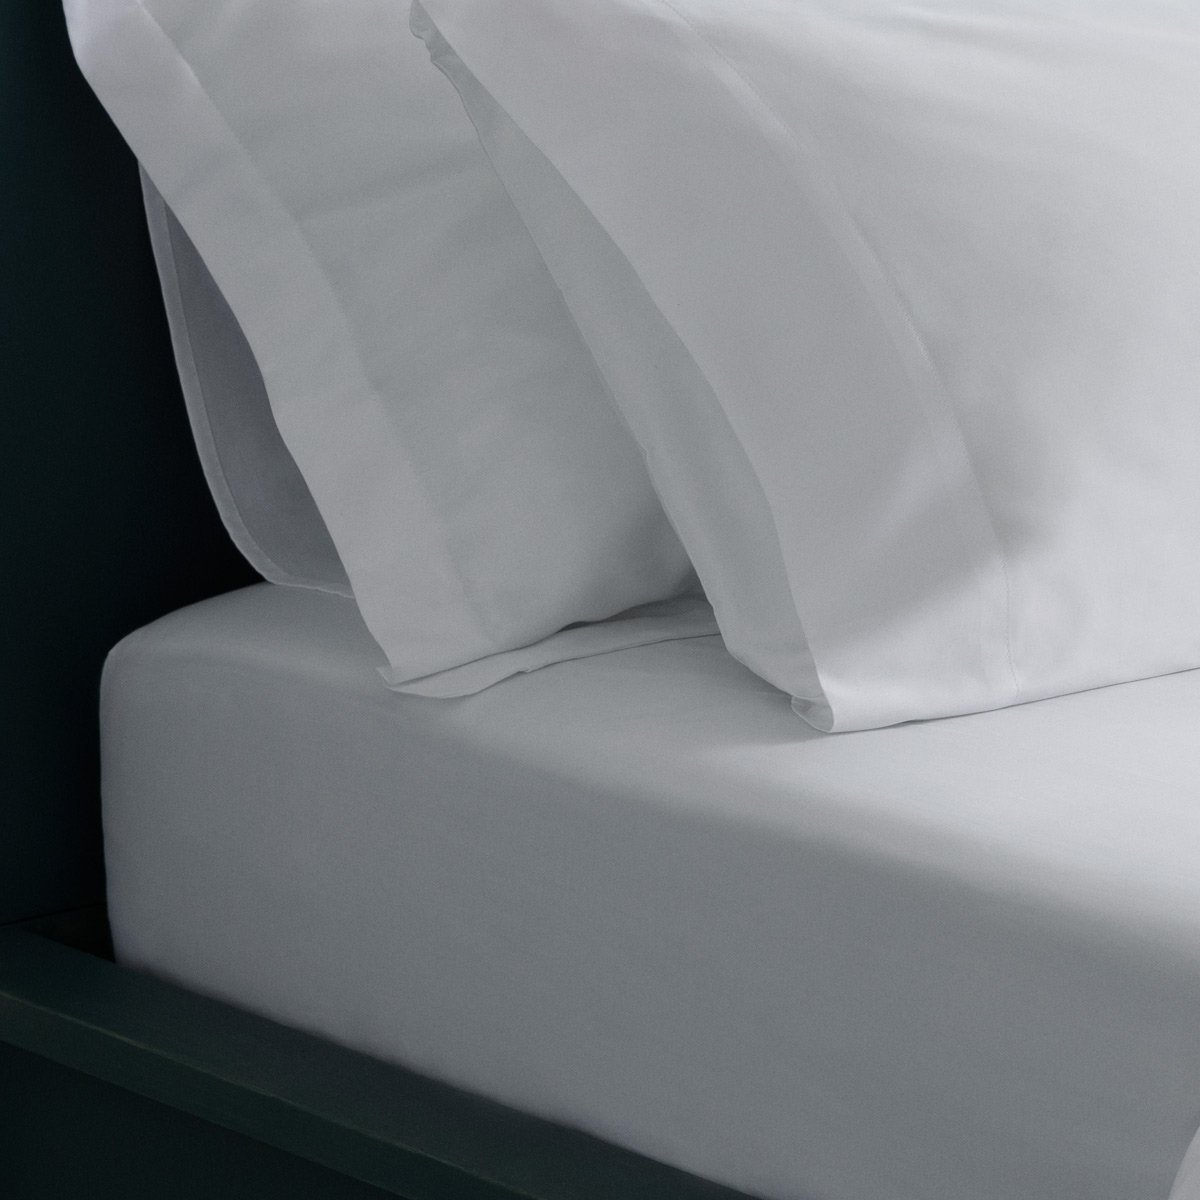 image-The Crisp & Cool luxury fitted sheet